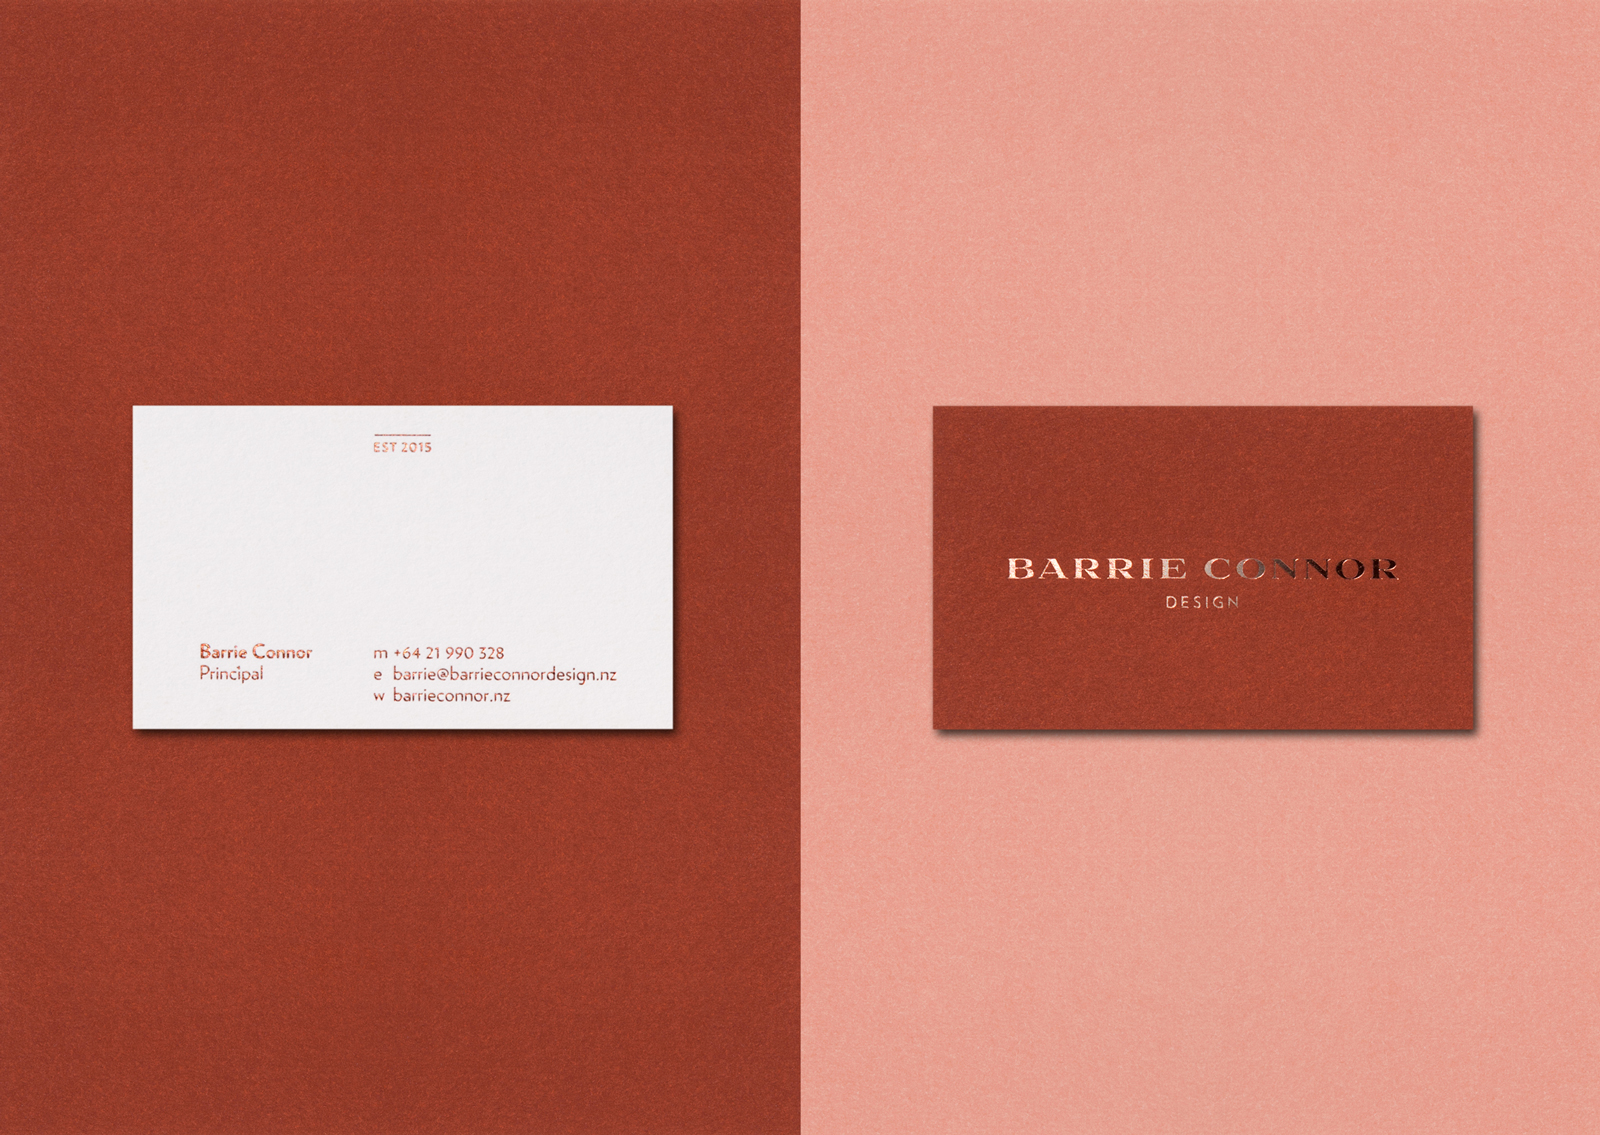 Minimal copper foil typography and Rich tan and blush pink contrast on the trio of Barrie Connor business cards